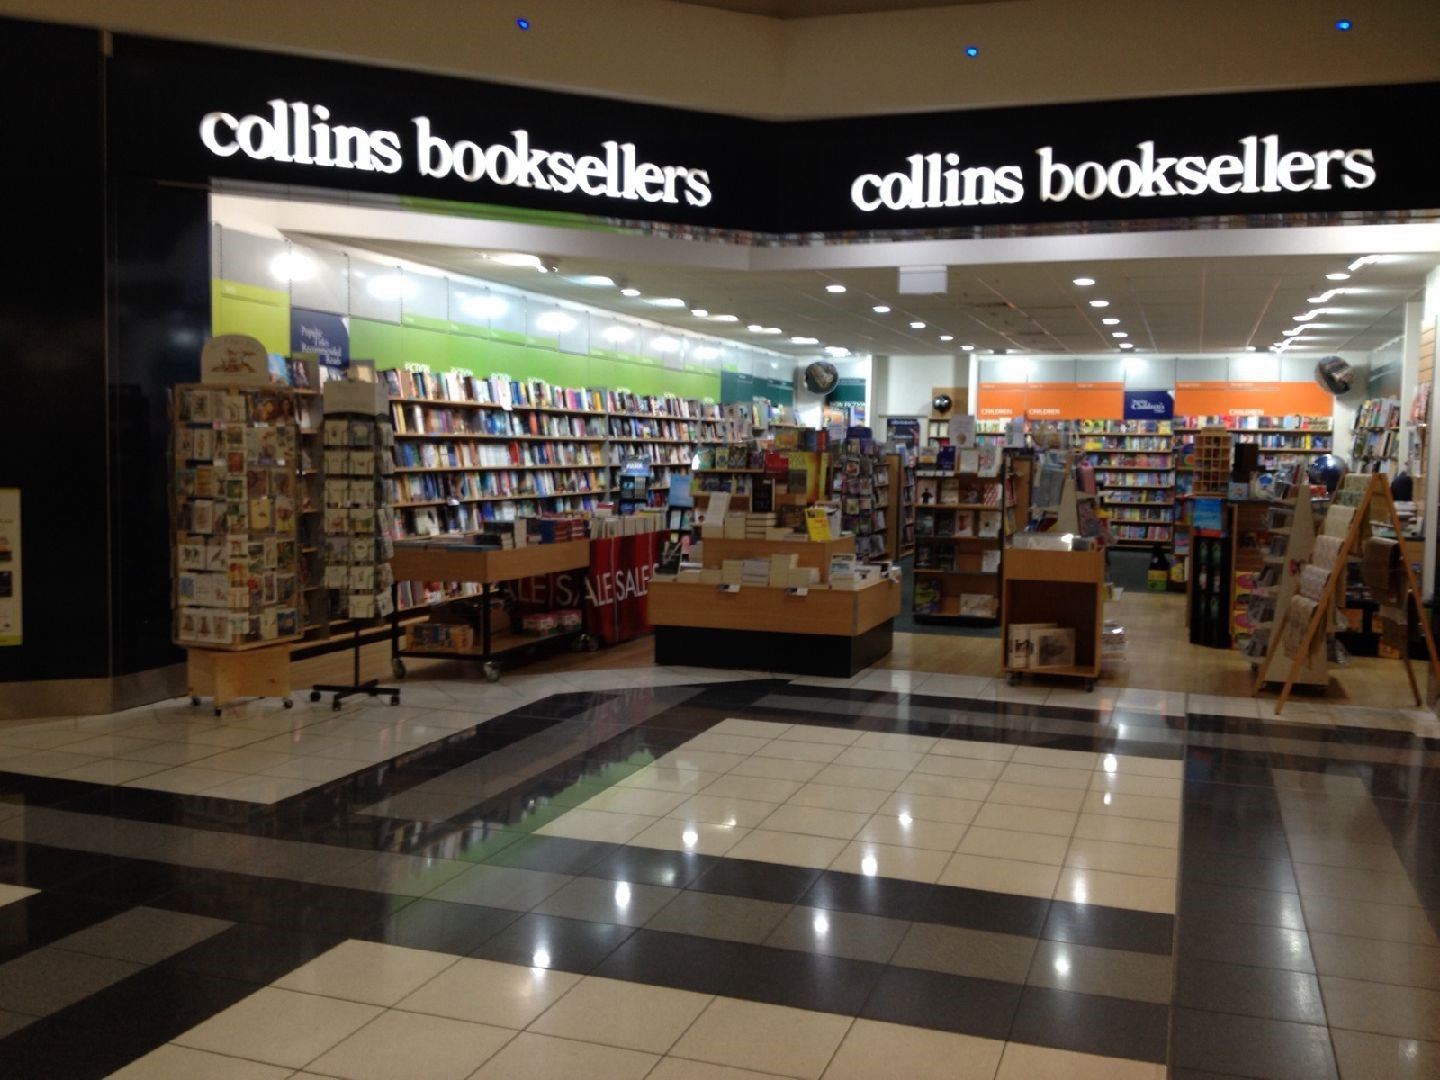 collins-booksellers-armidale-nsw-1